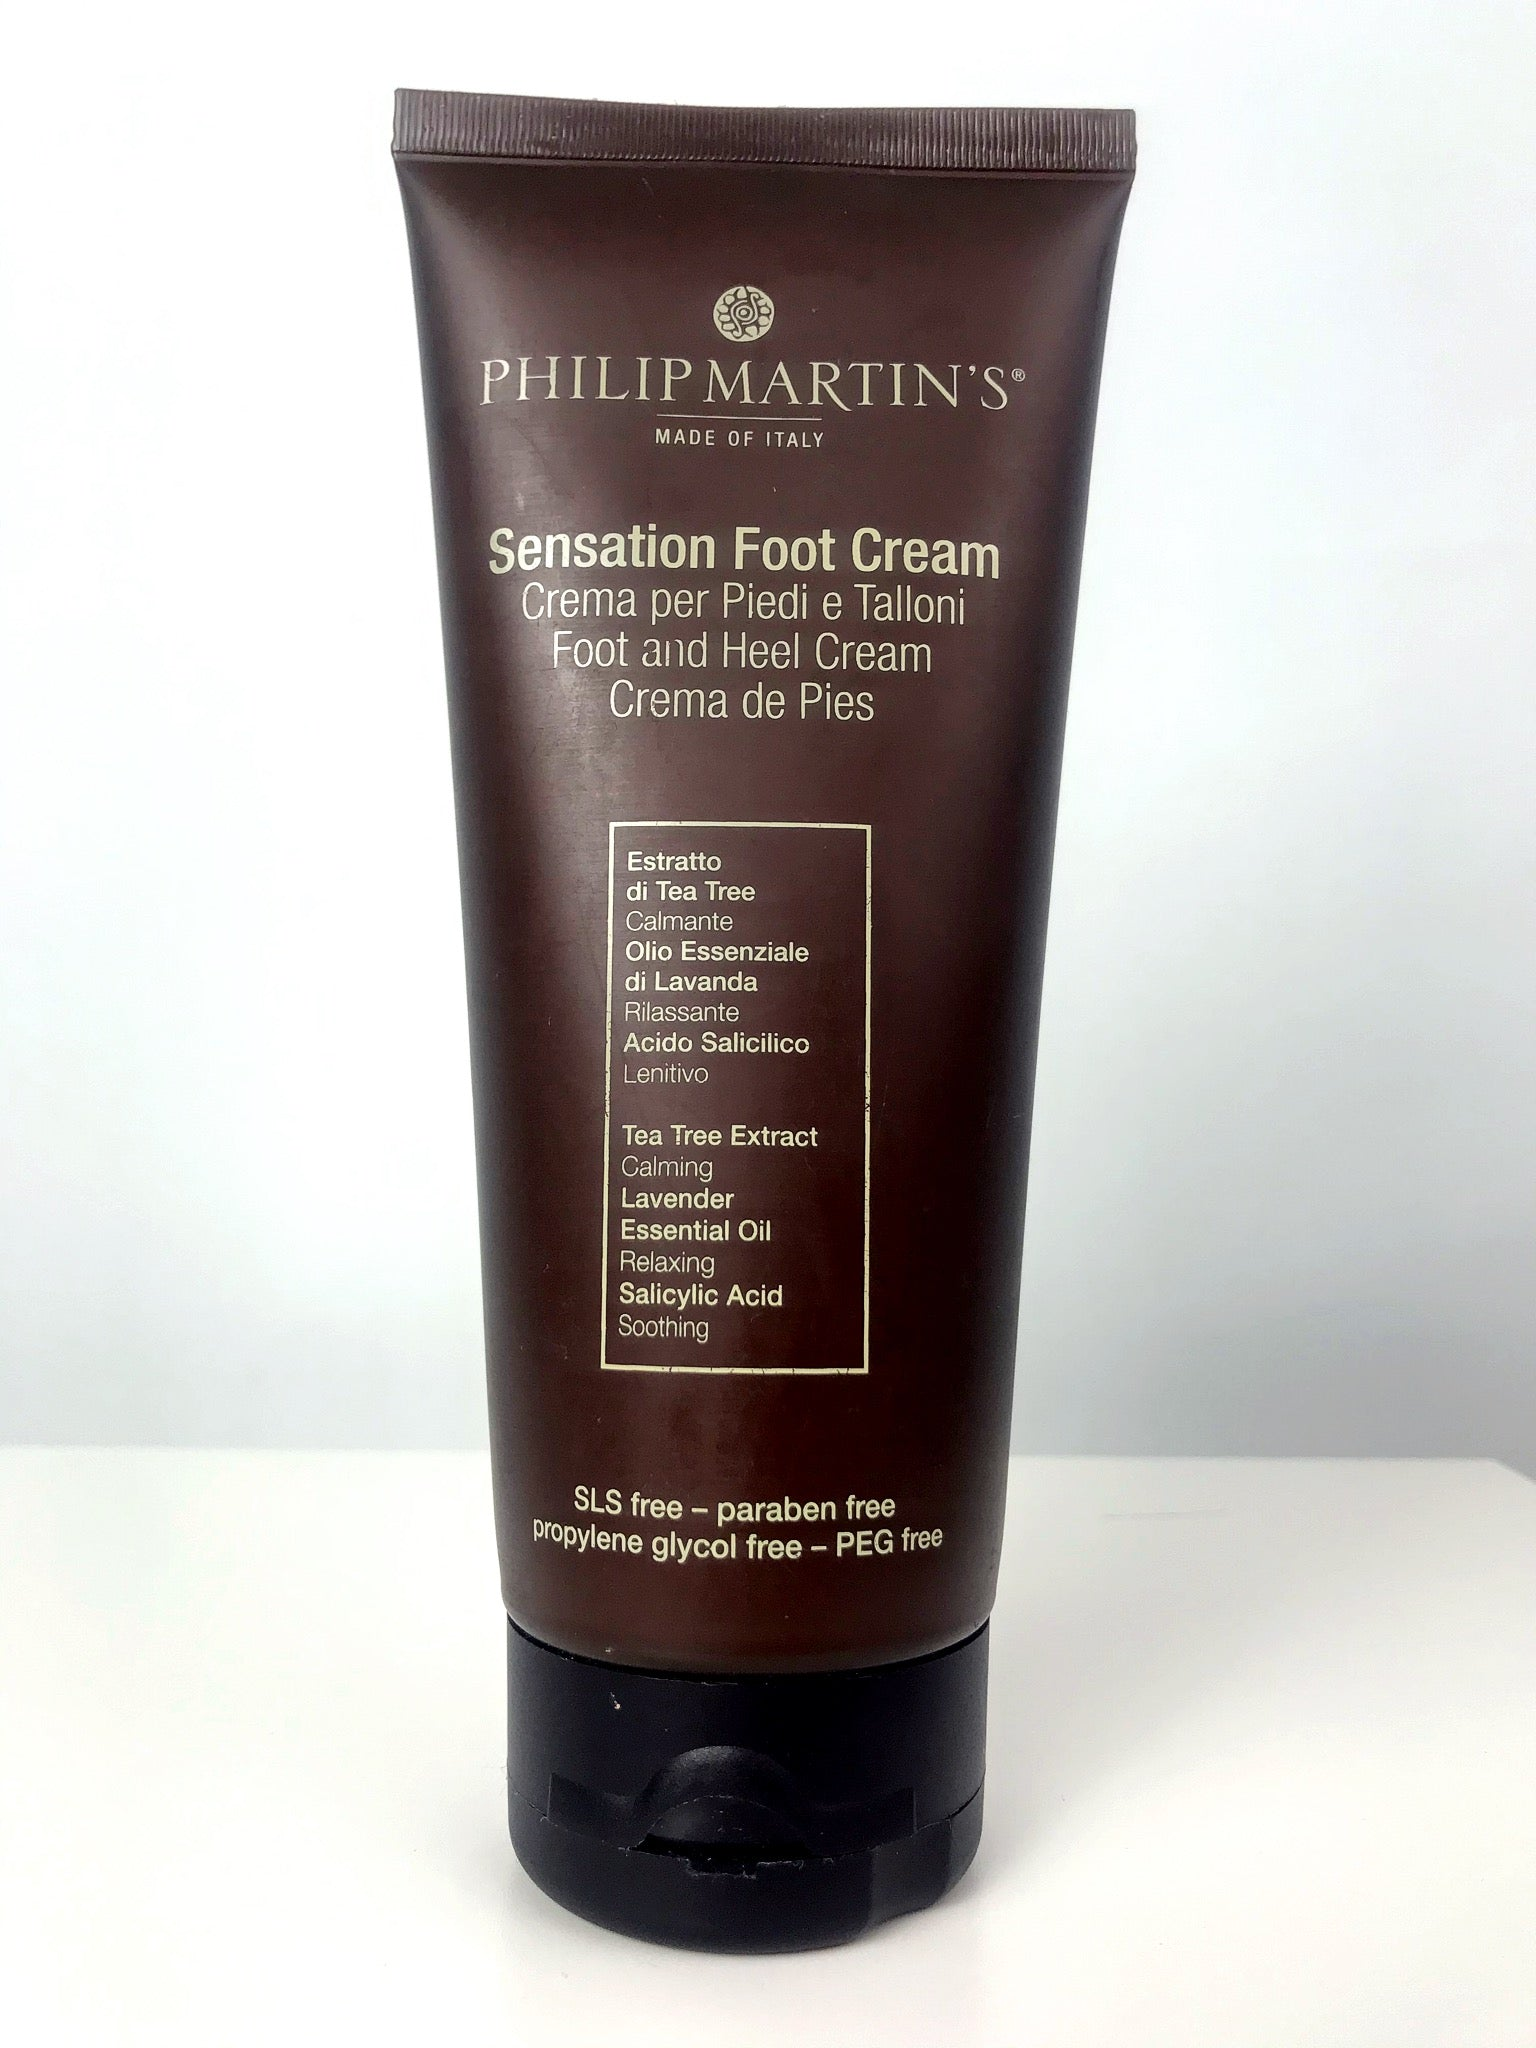 Philip Martin's Sensation Foot Cream